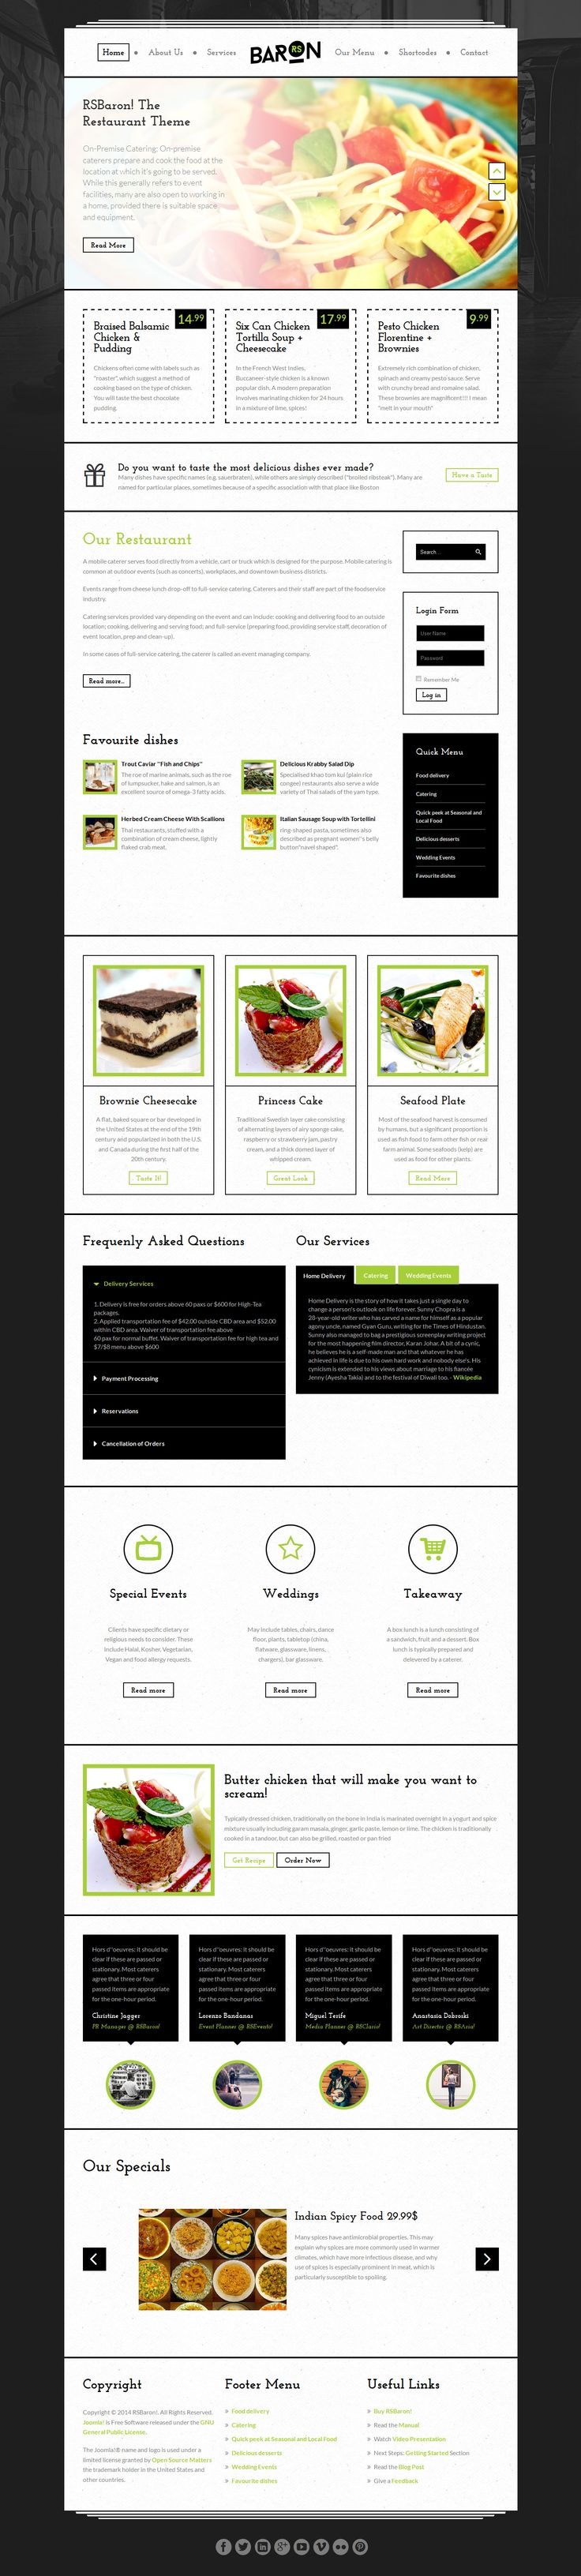 RSBaron! template - a focus on the restaurant business